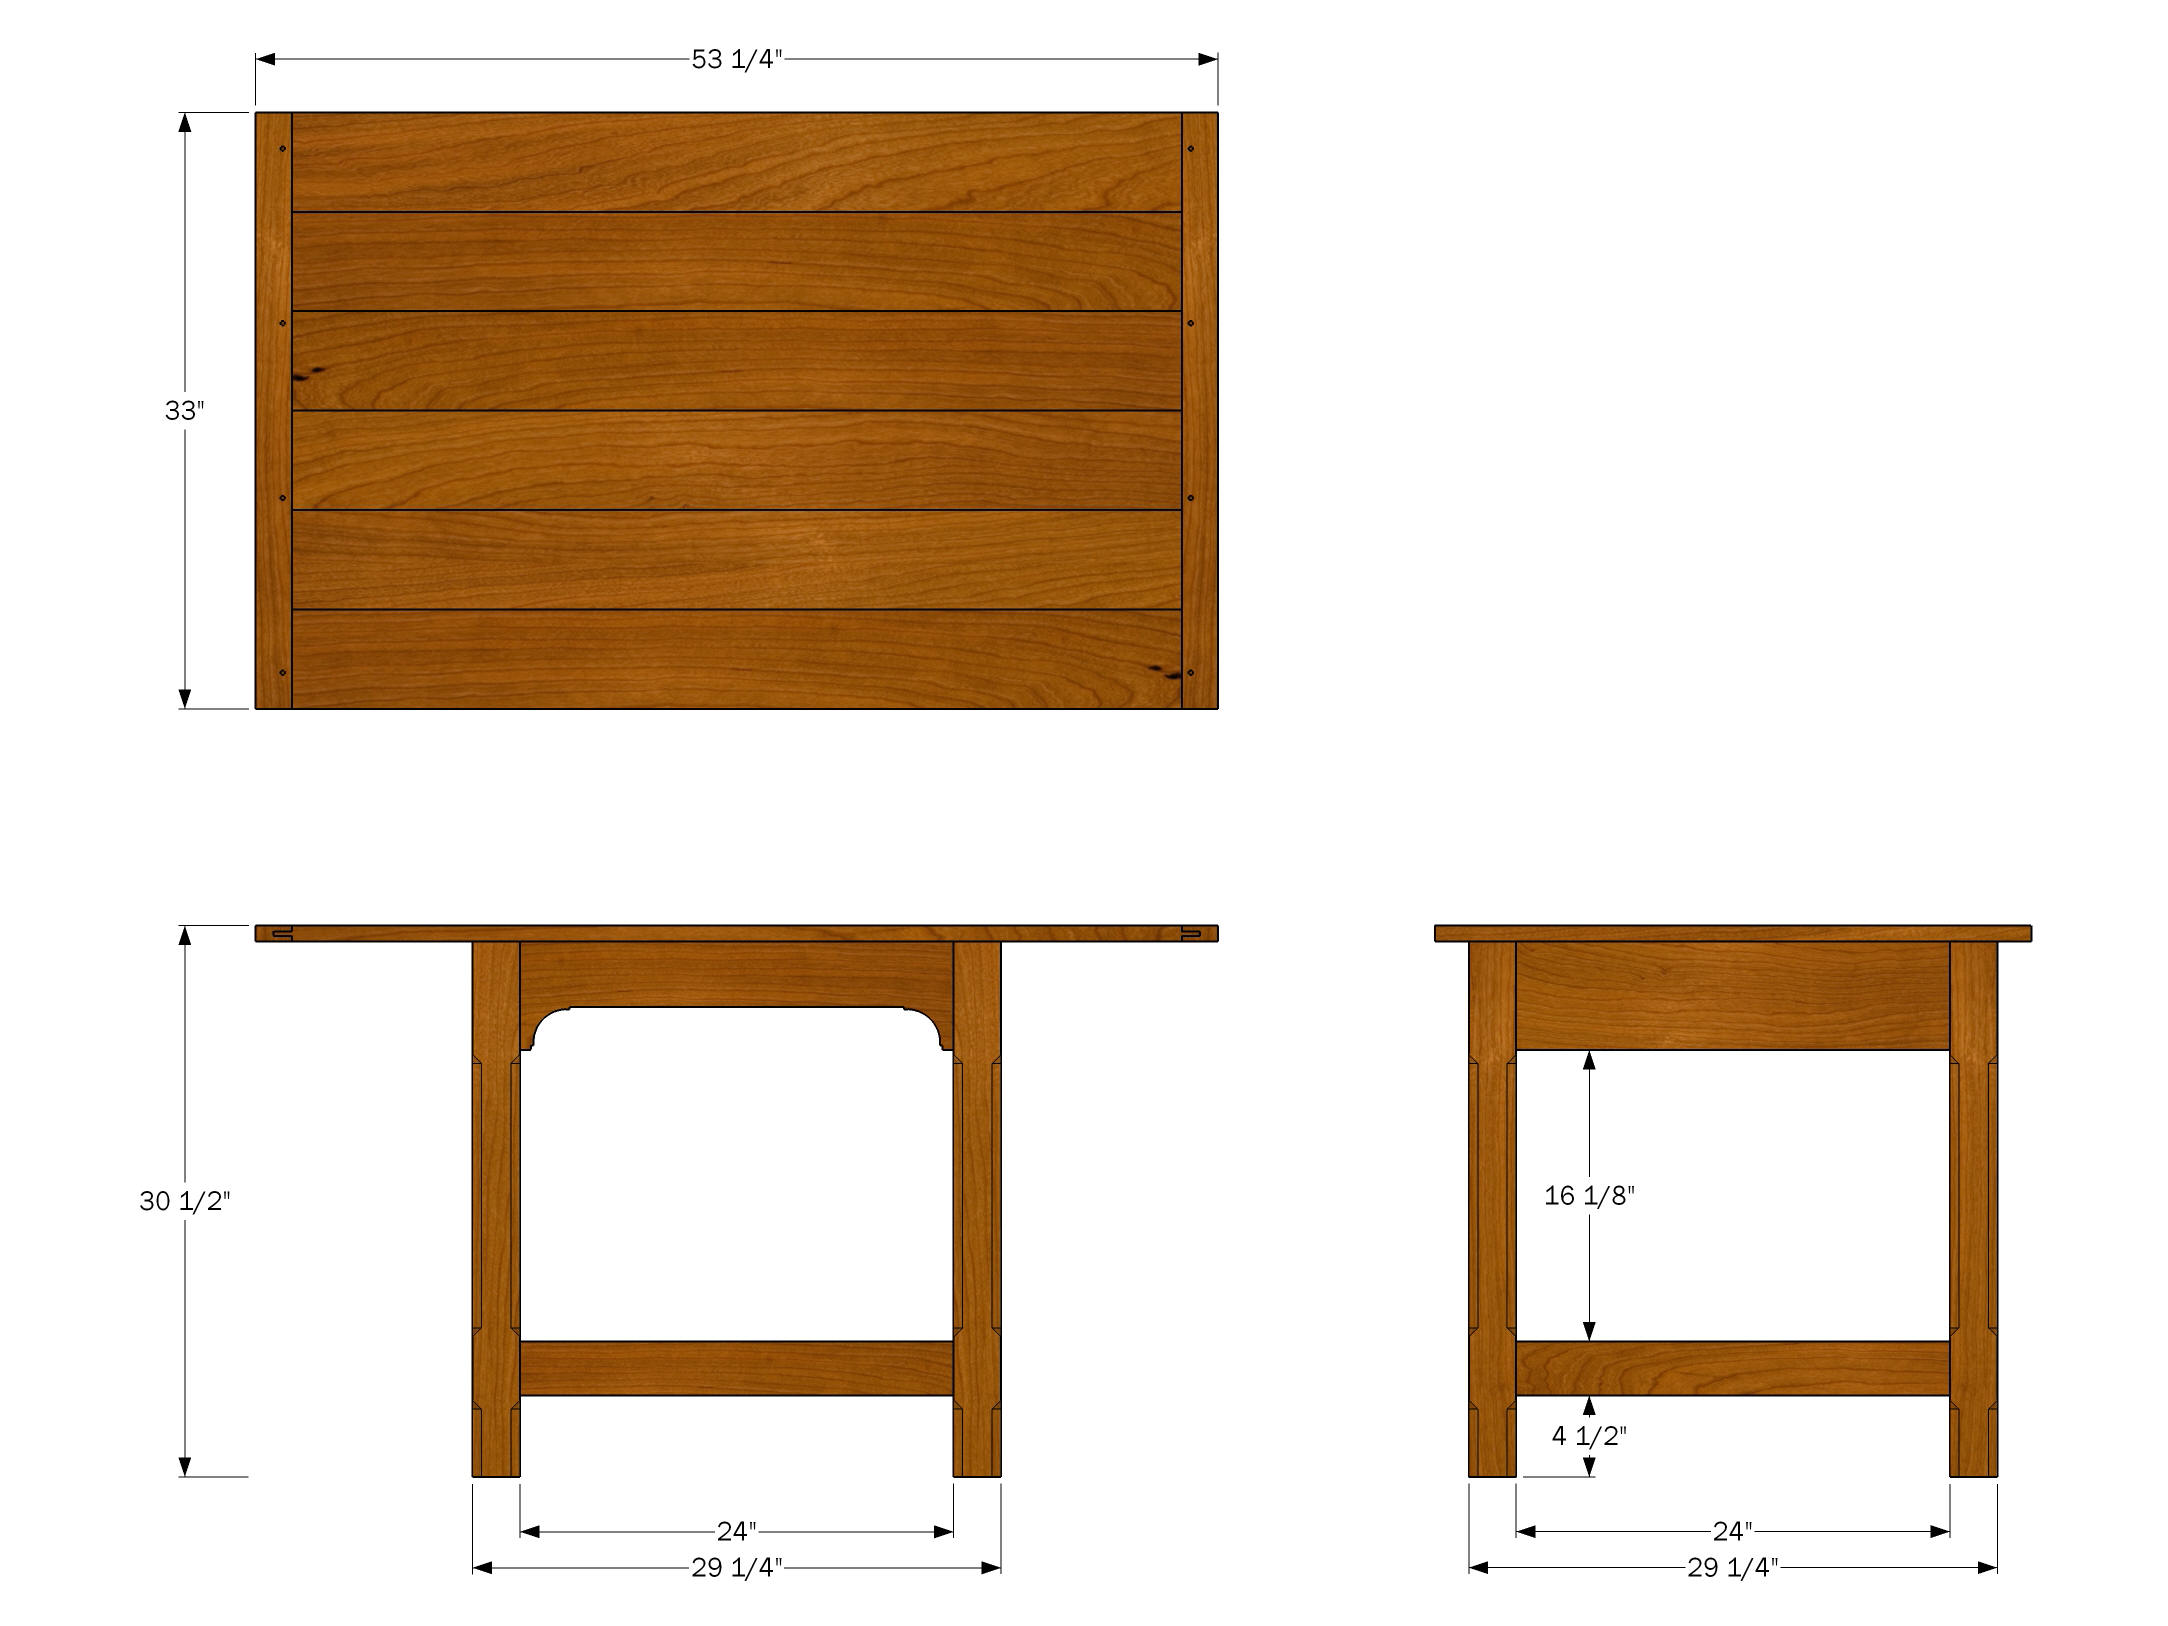 Apartment Dining Table Plan: Orthographic Views | Jeff ...